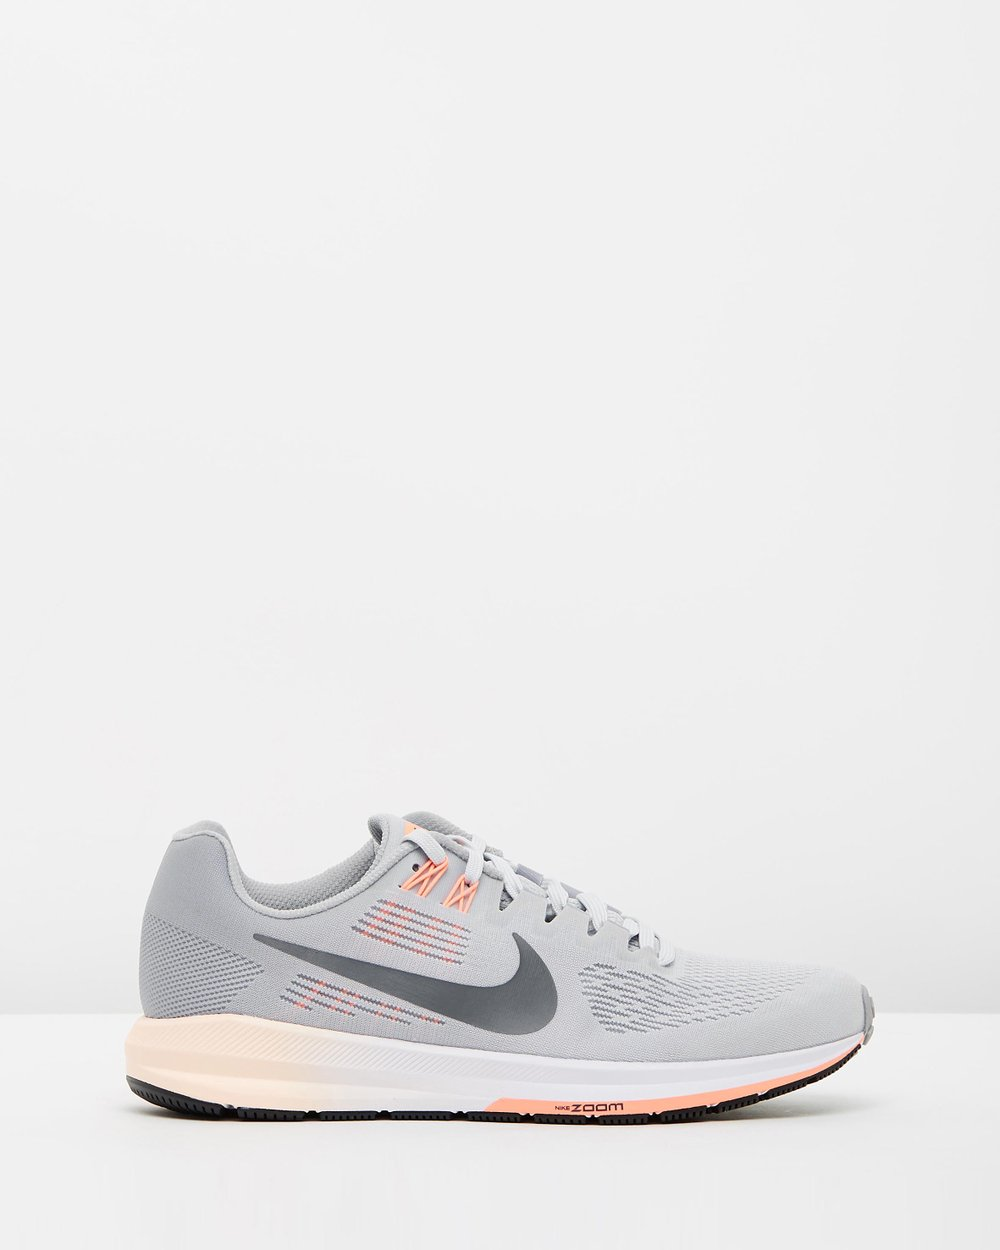 924a030bfc18 Air Zoom Structure 21 Running Shoes - Women s by Nike Online